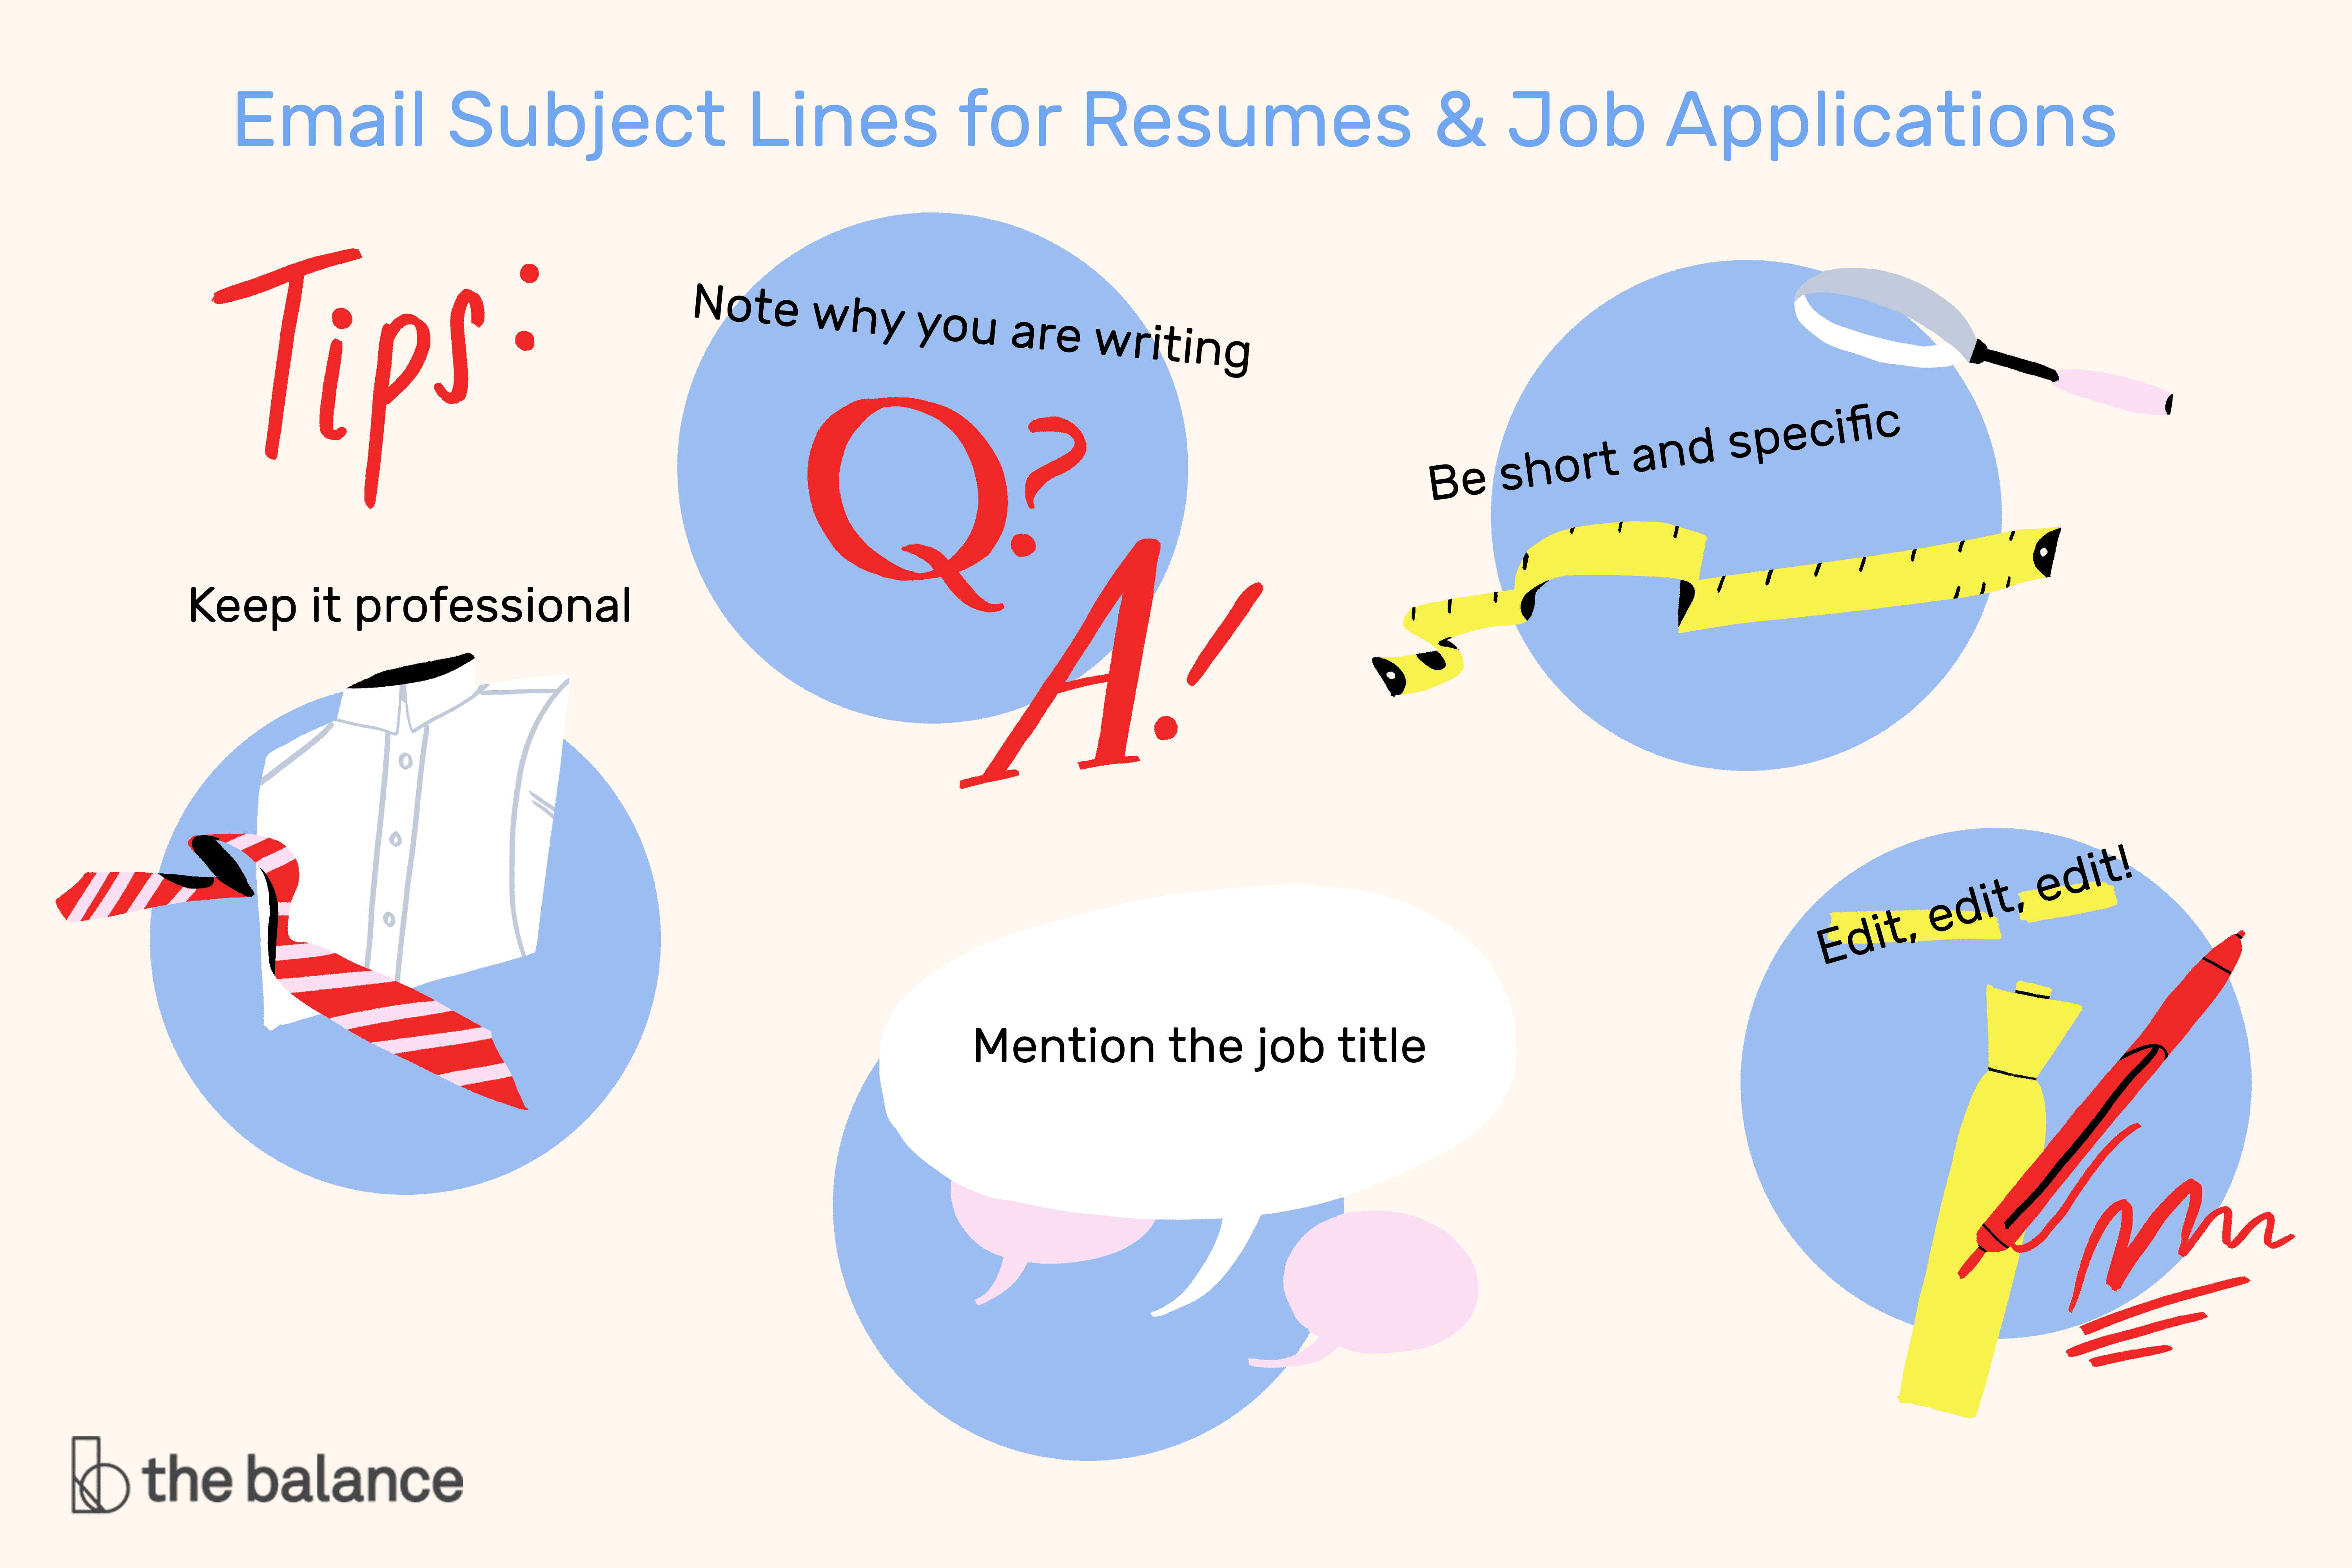 Email Subject Lines for Resumes and Job Applications